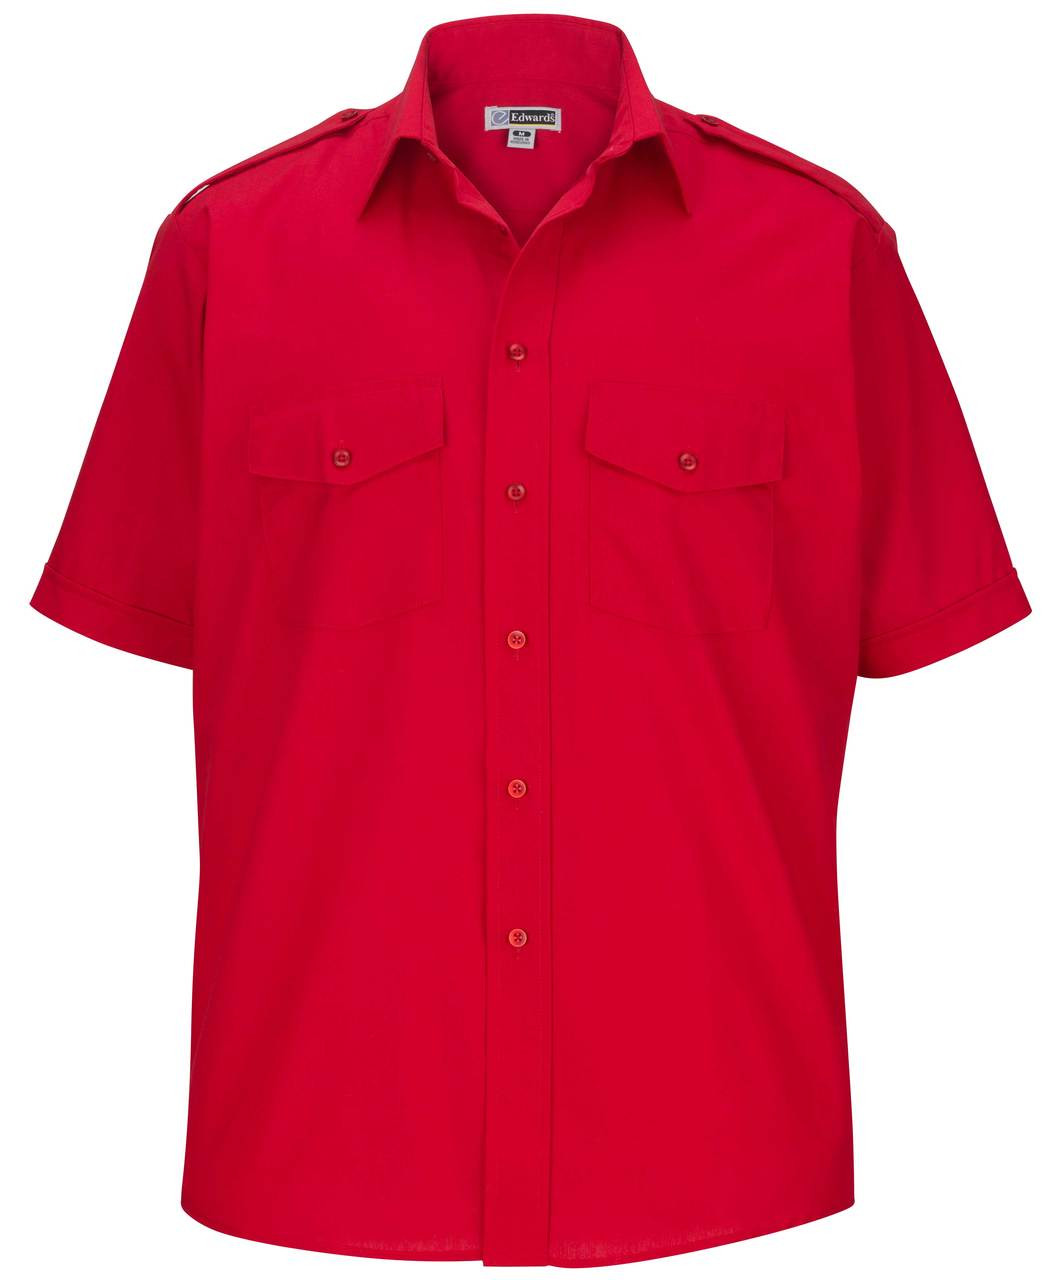 Safari Shirt CLOSEOUT No Returns